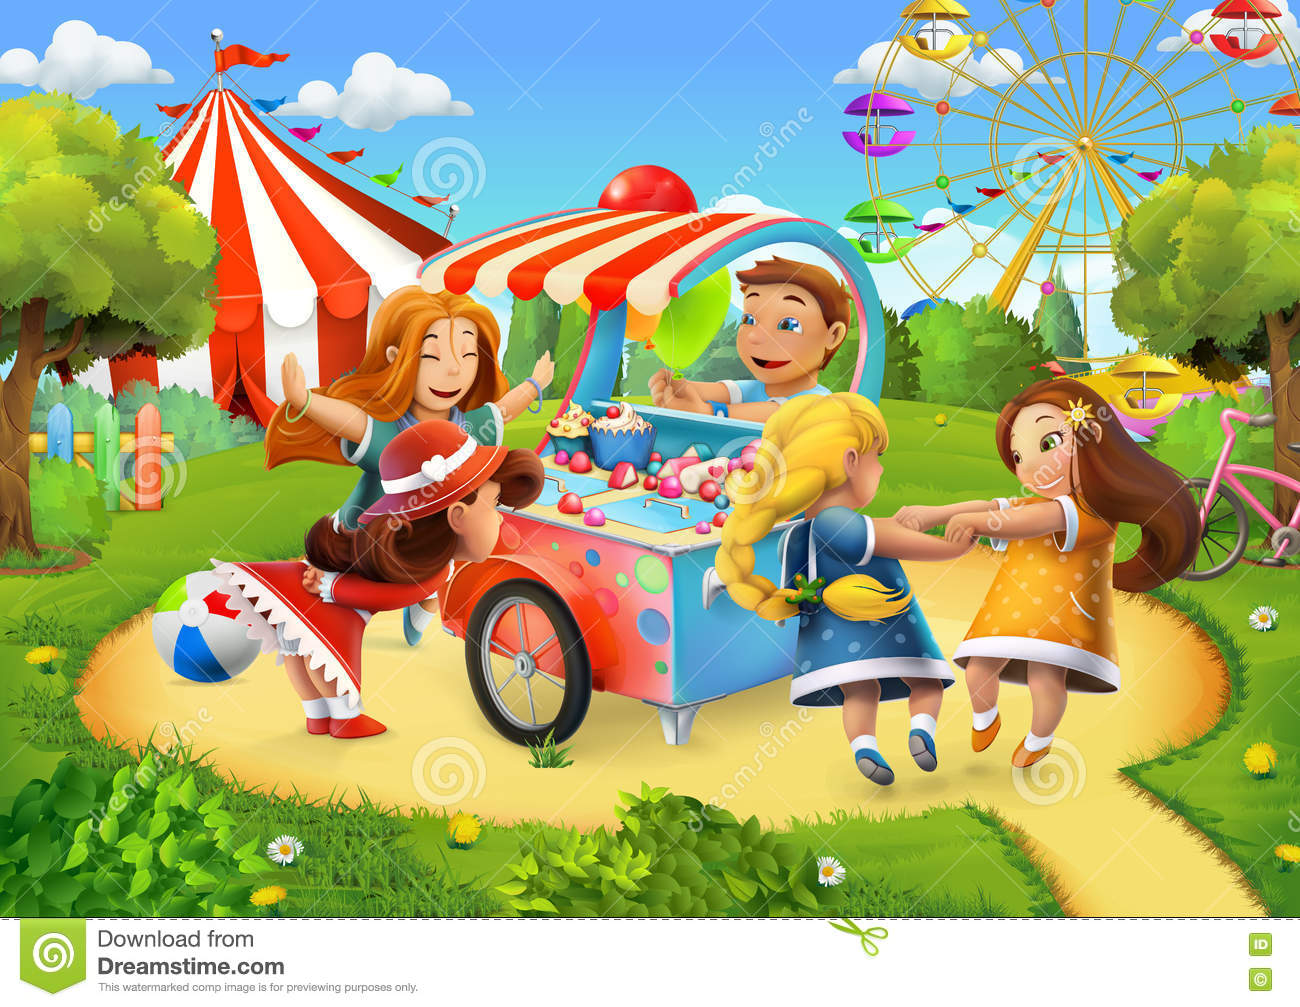 Cute Kid Wallpapers Free Download Park Playground Background Stock Vector Image 72787962